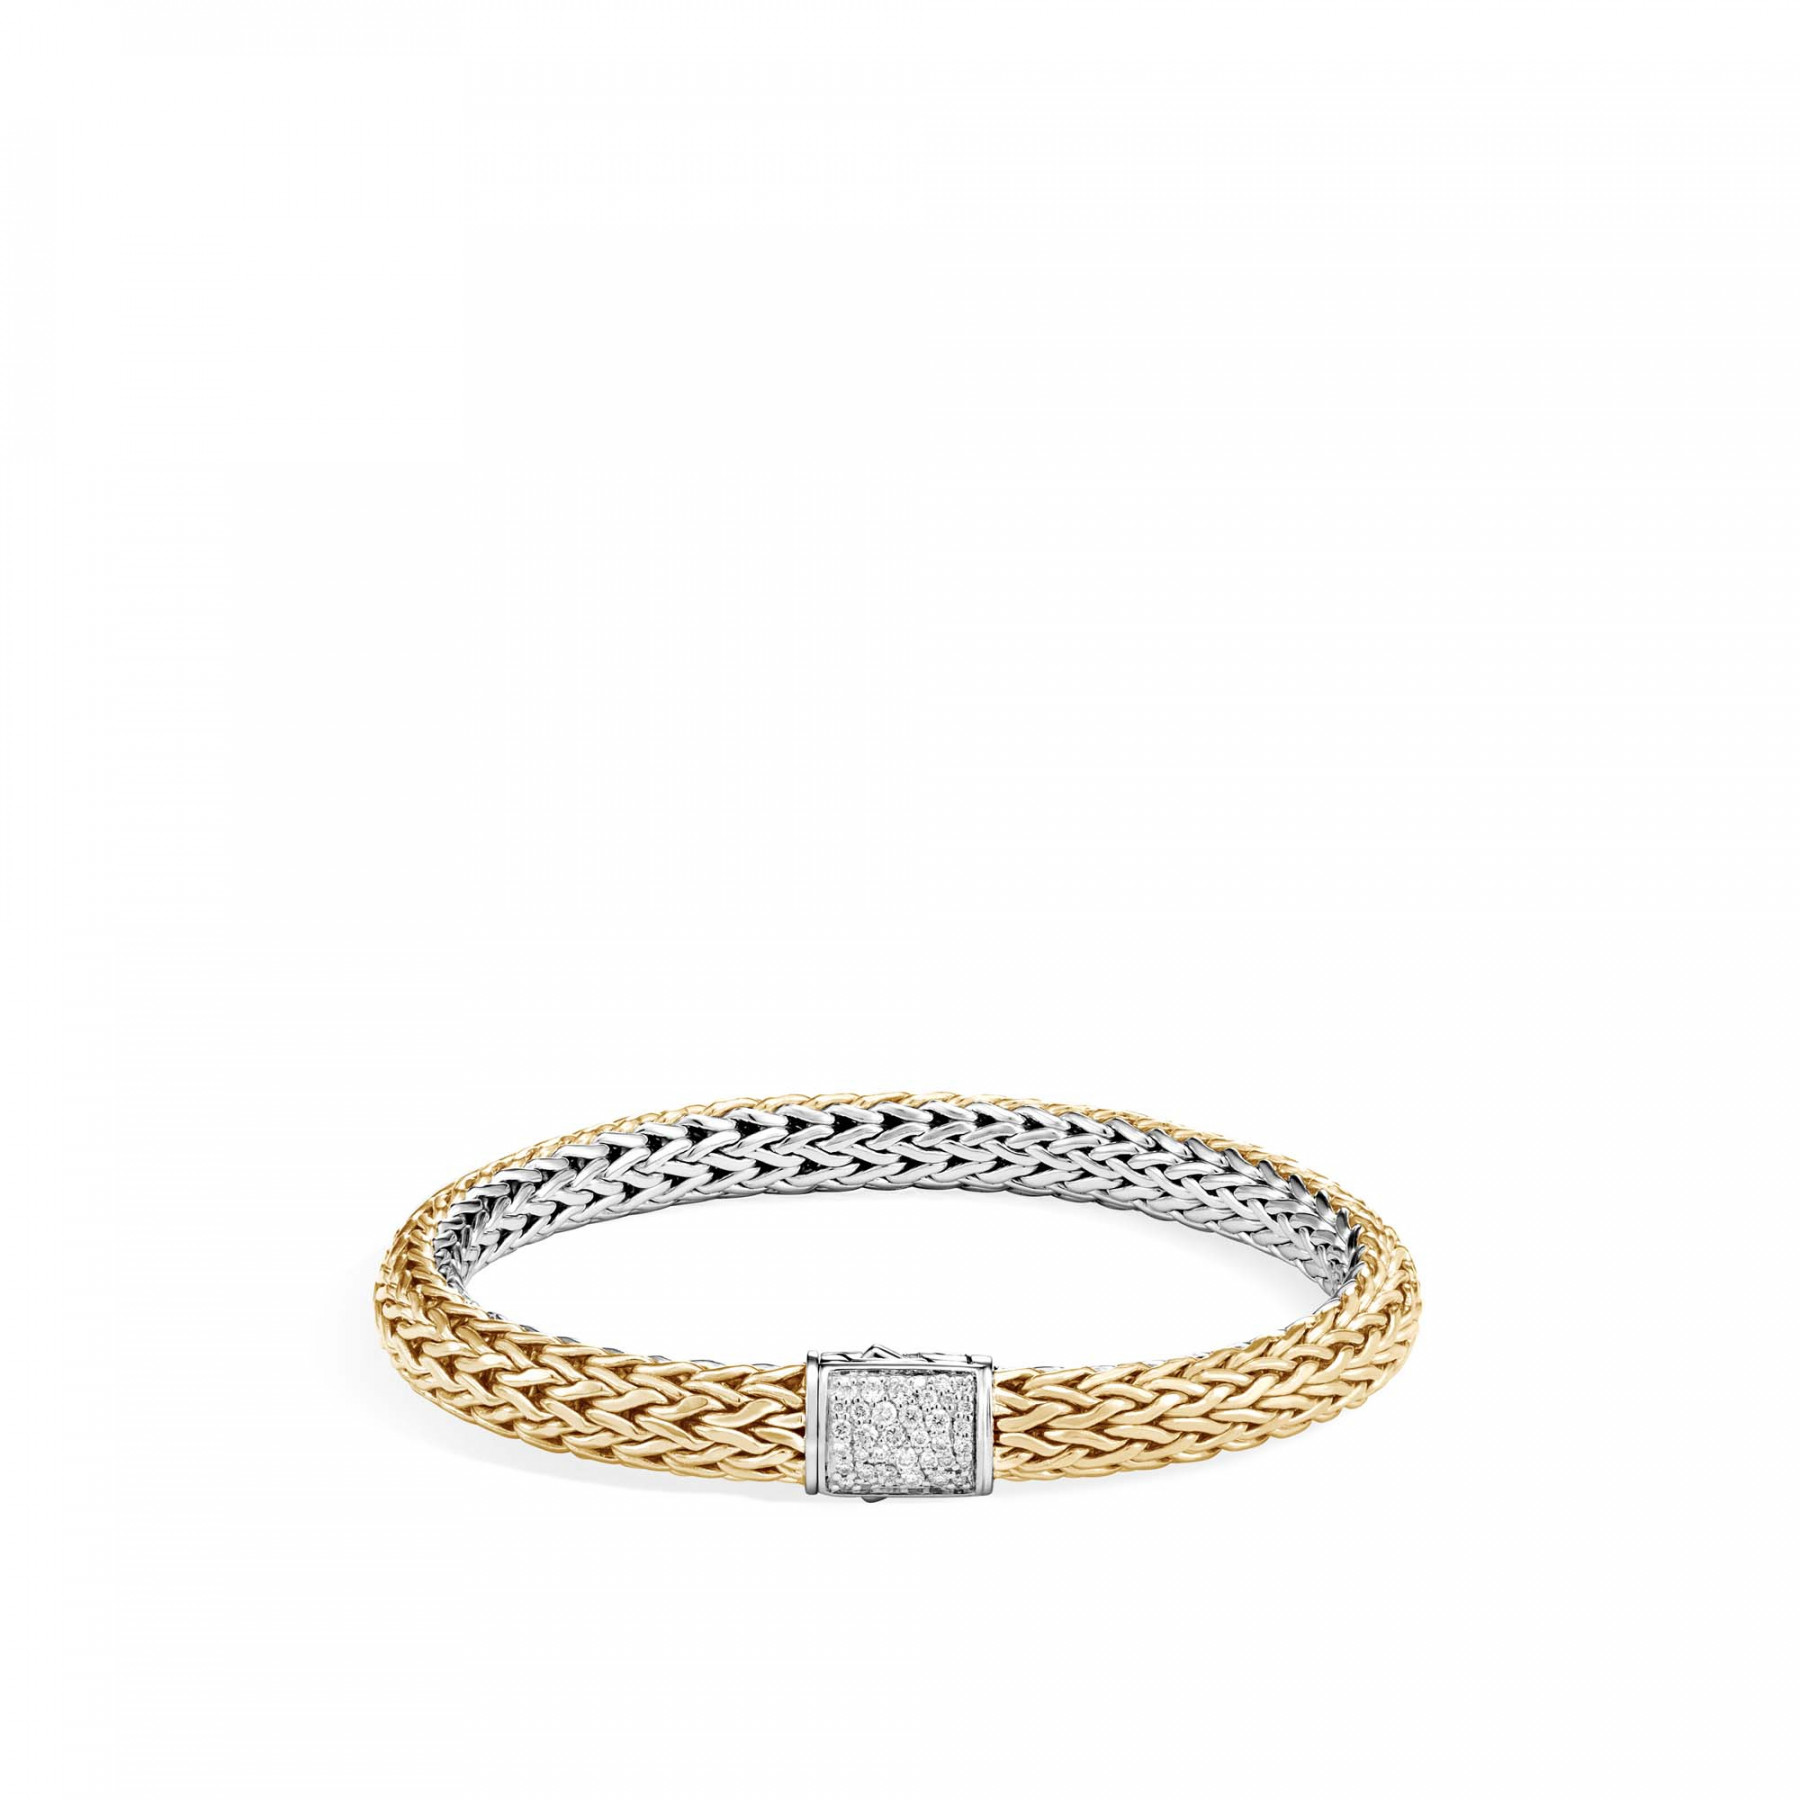 John Hardy Classic Chain Two Tone Bracelet with Diamonds (7.5mm) front image gold